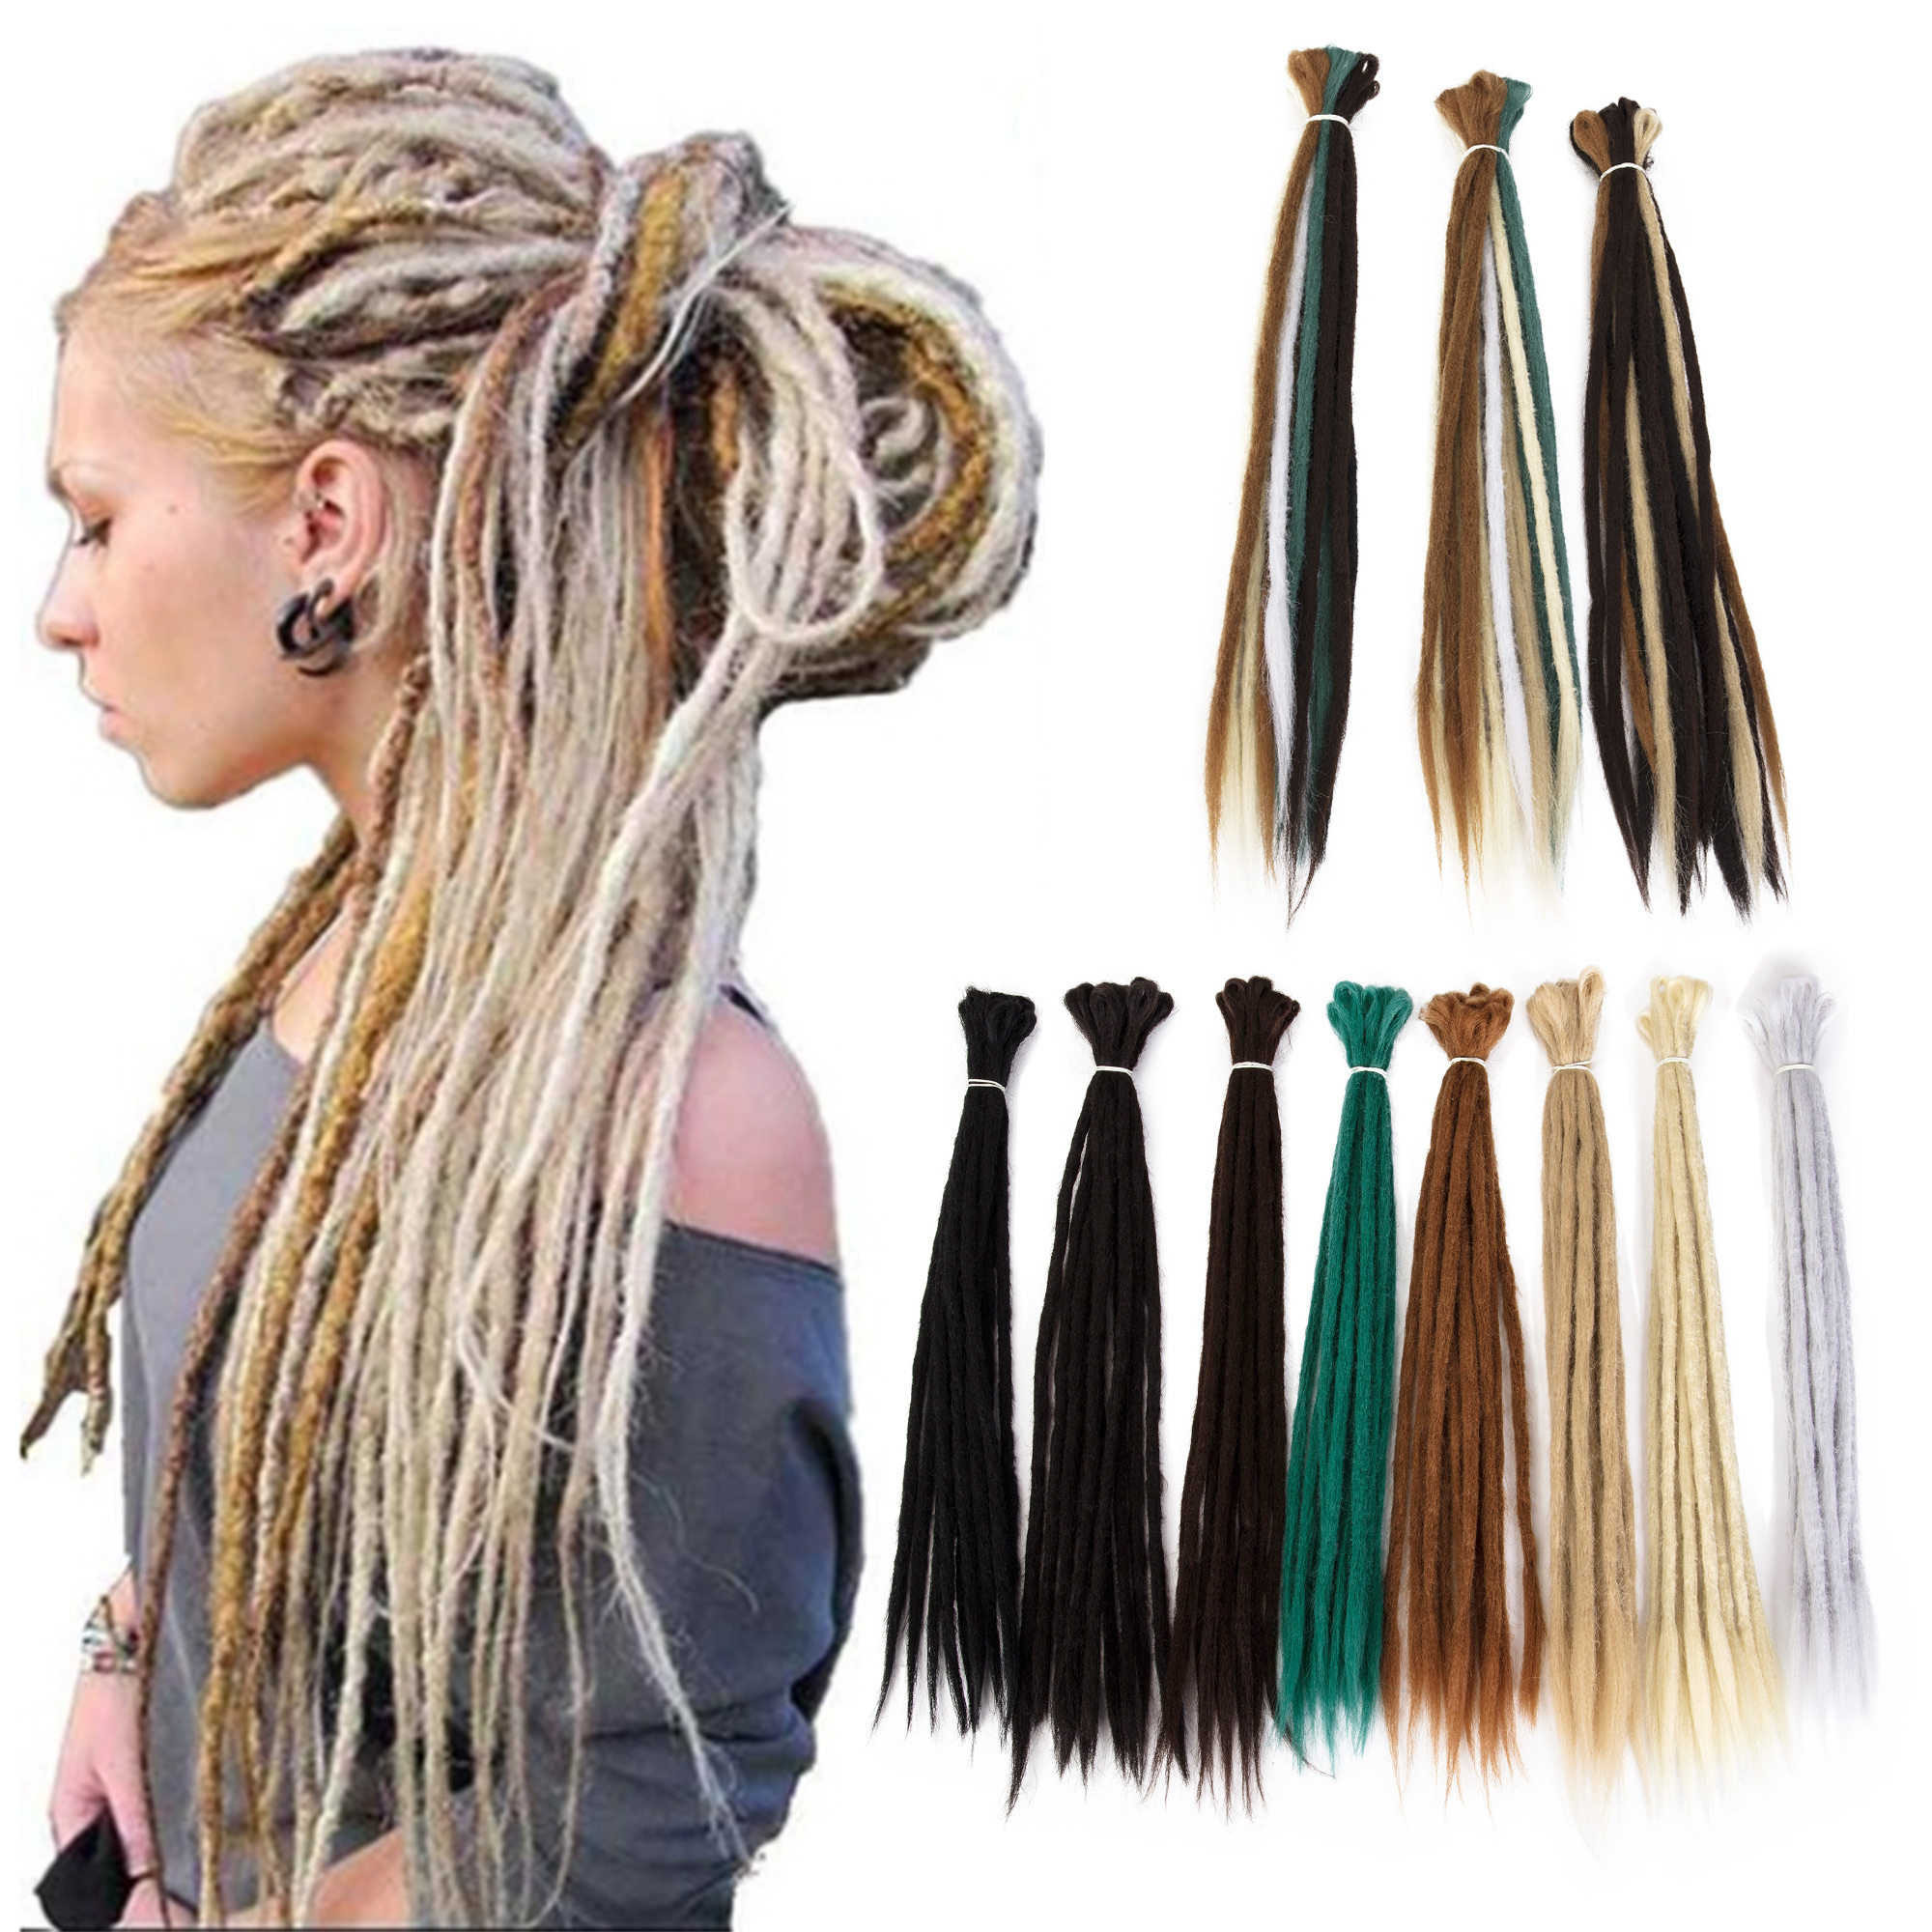 Florata 5 Bundles Crochet Braids Dreadlock Hair Extensions Synthetic Wavy Faux Locs Crochet Hair Synthetic Hair For Women 20 Inch 25g Braiding Crochet Twist Hair Walmart Com Walmart Com